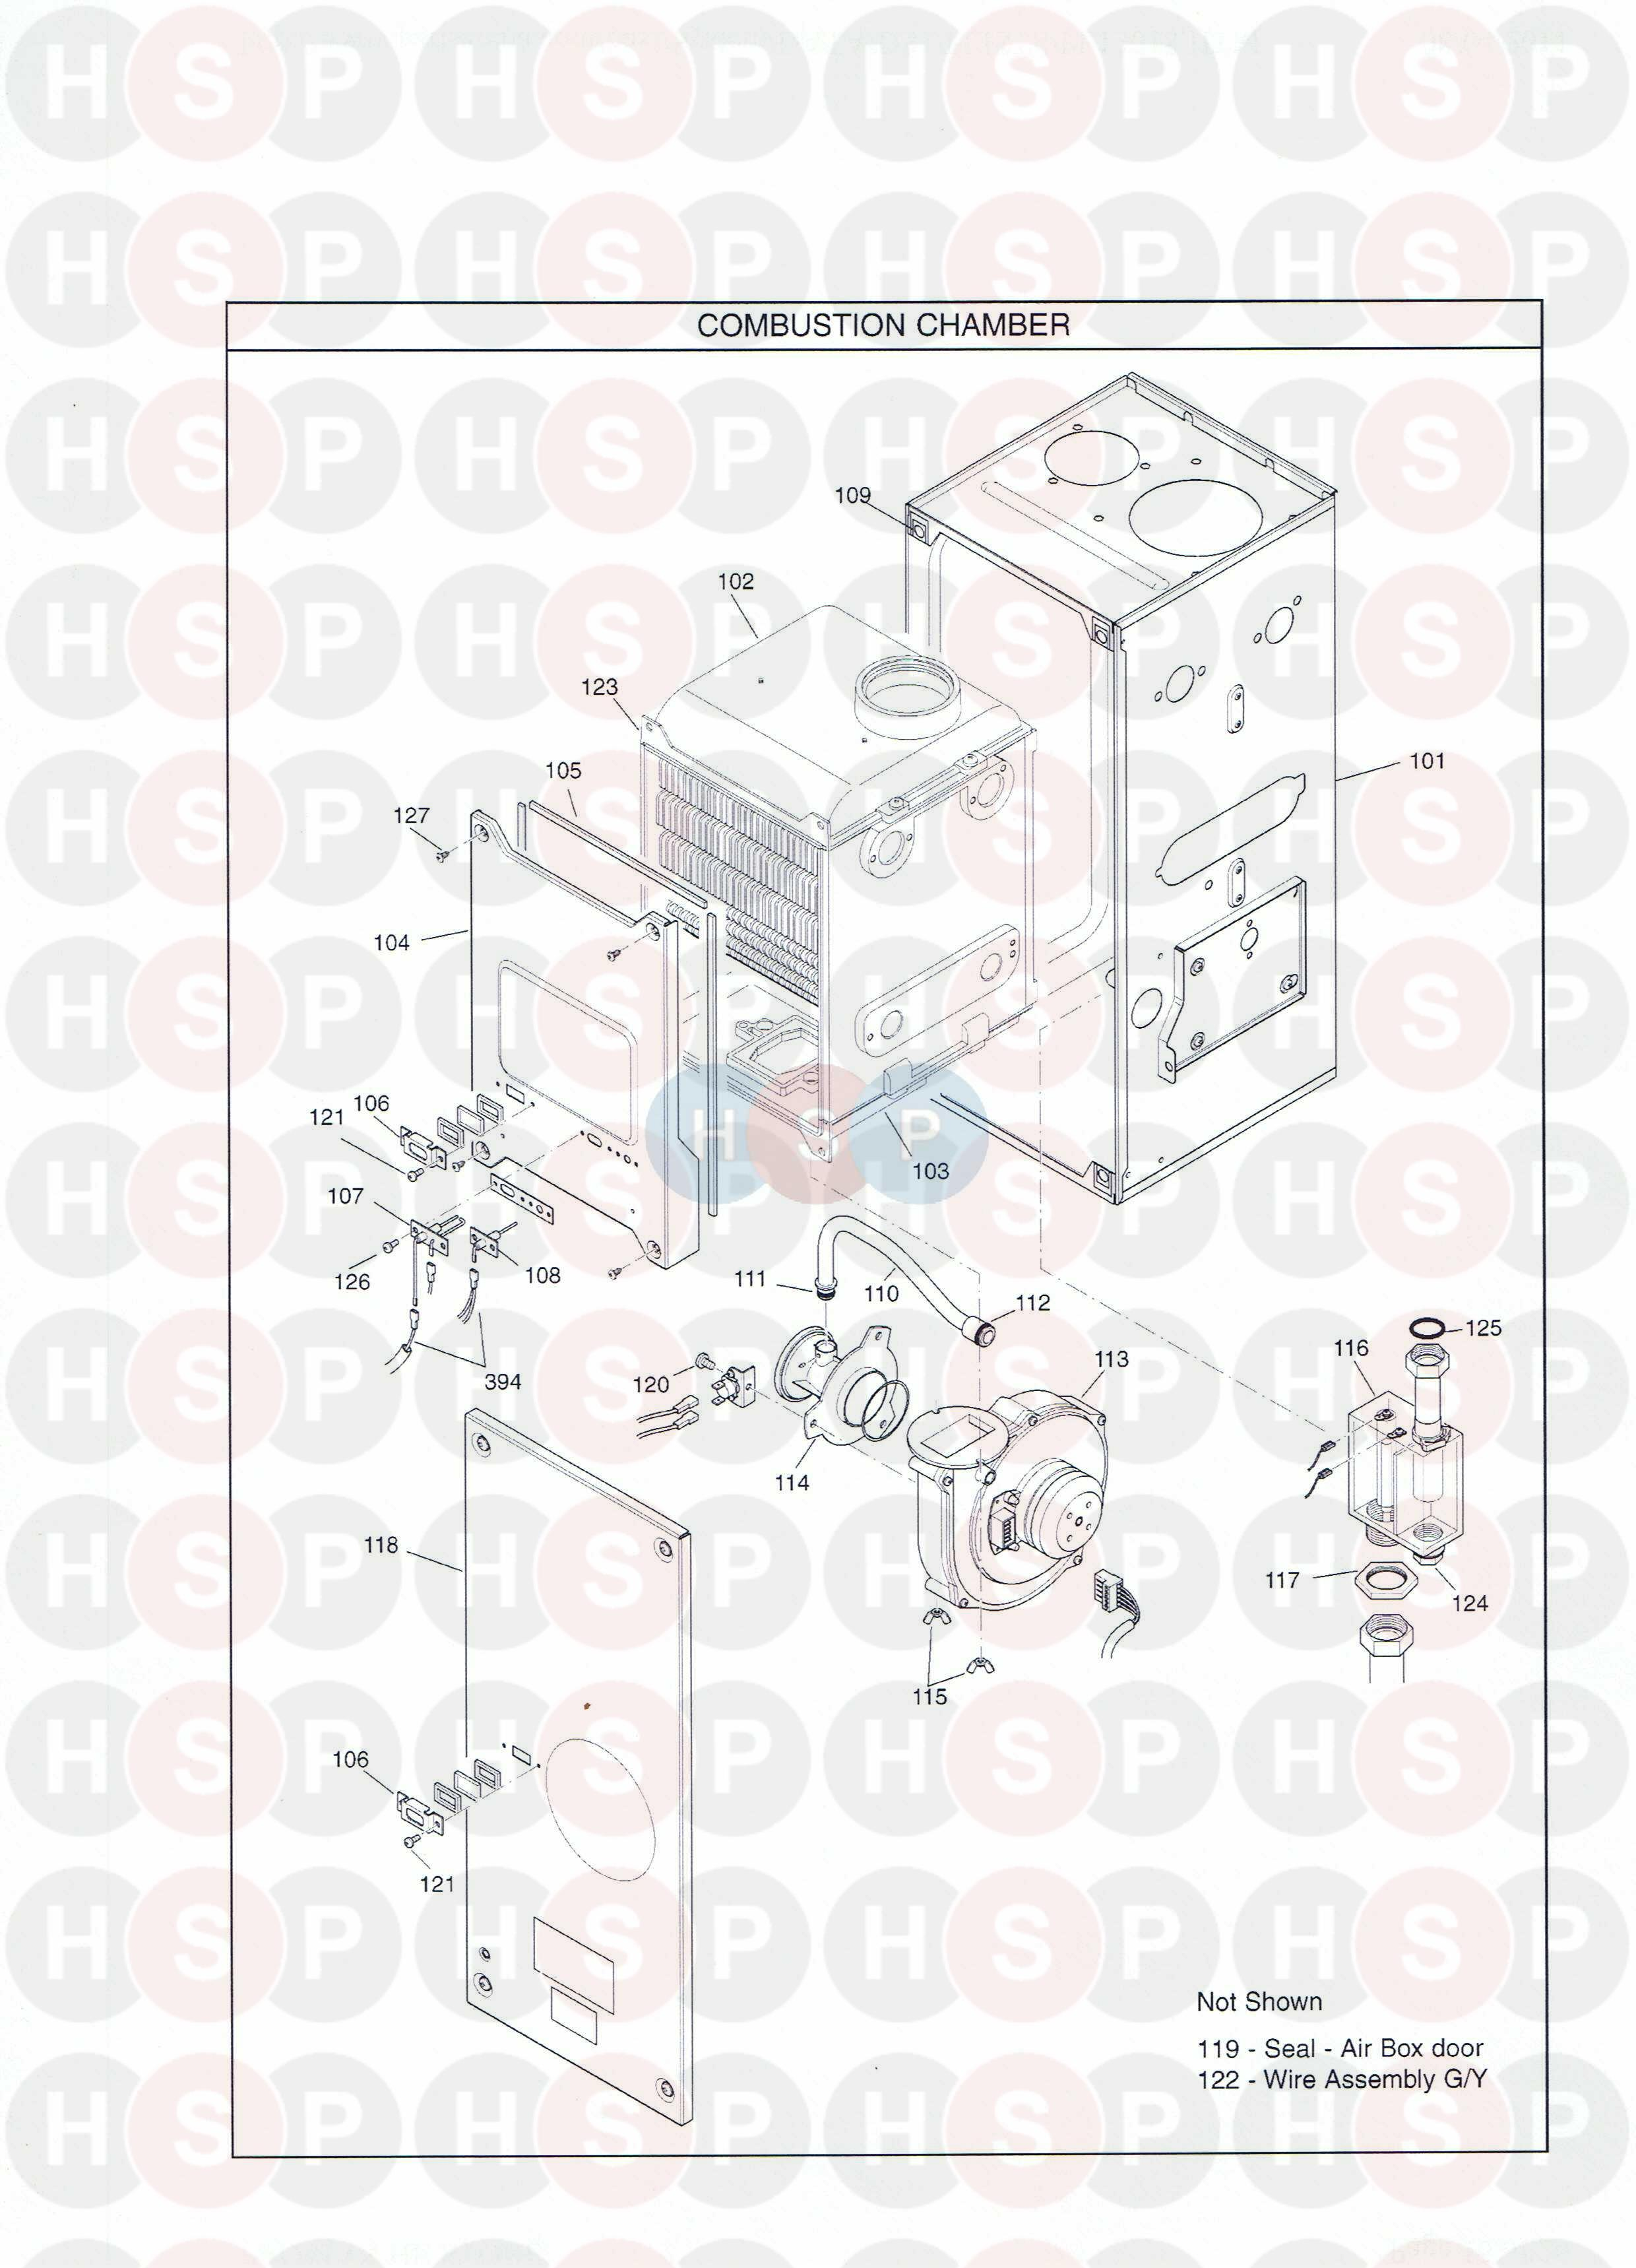 Potterton PROMAX HE SYSTEM (Combustion Chamber) Diagram